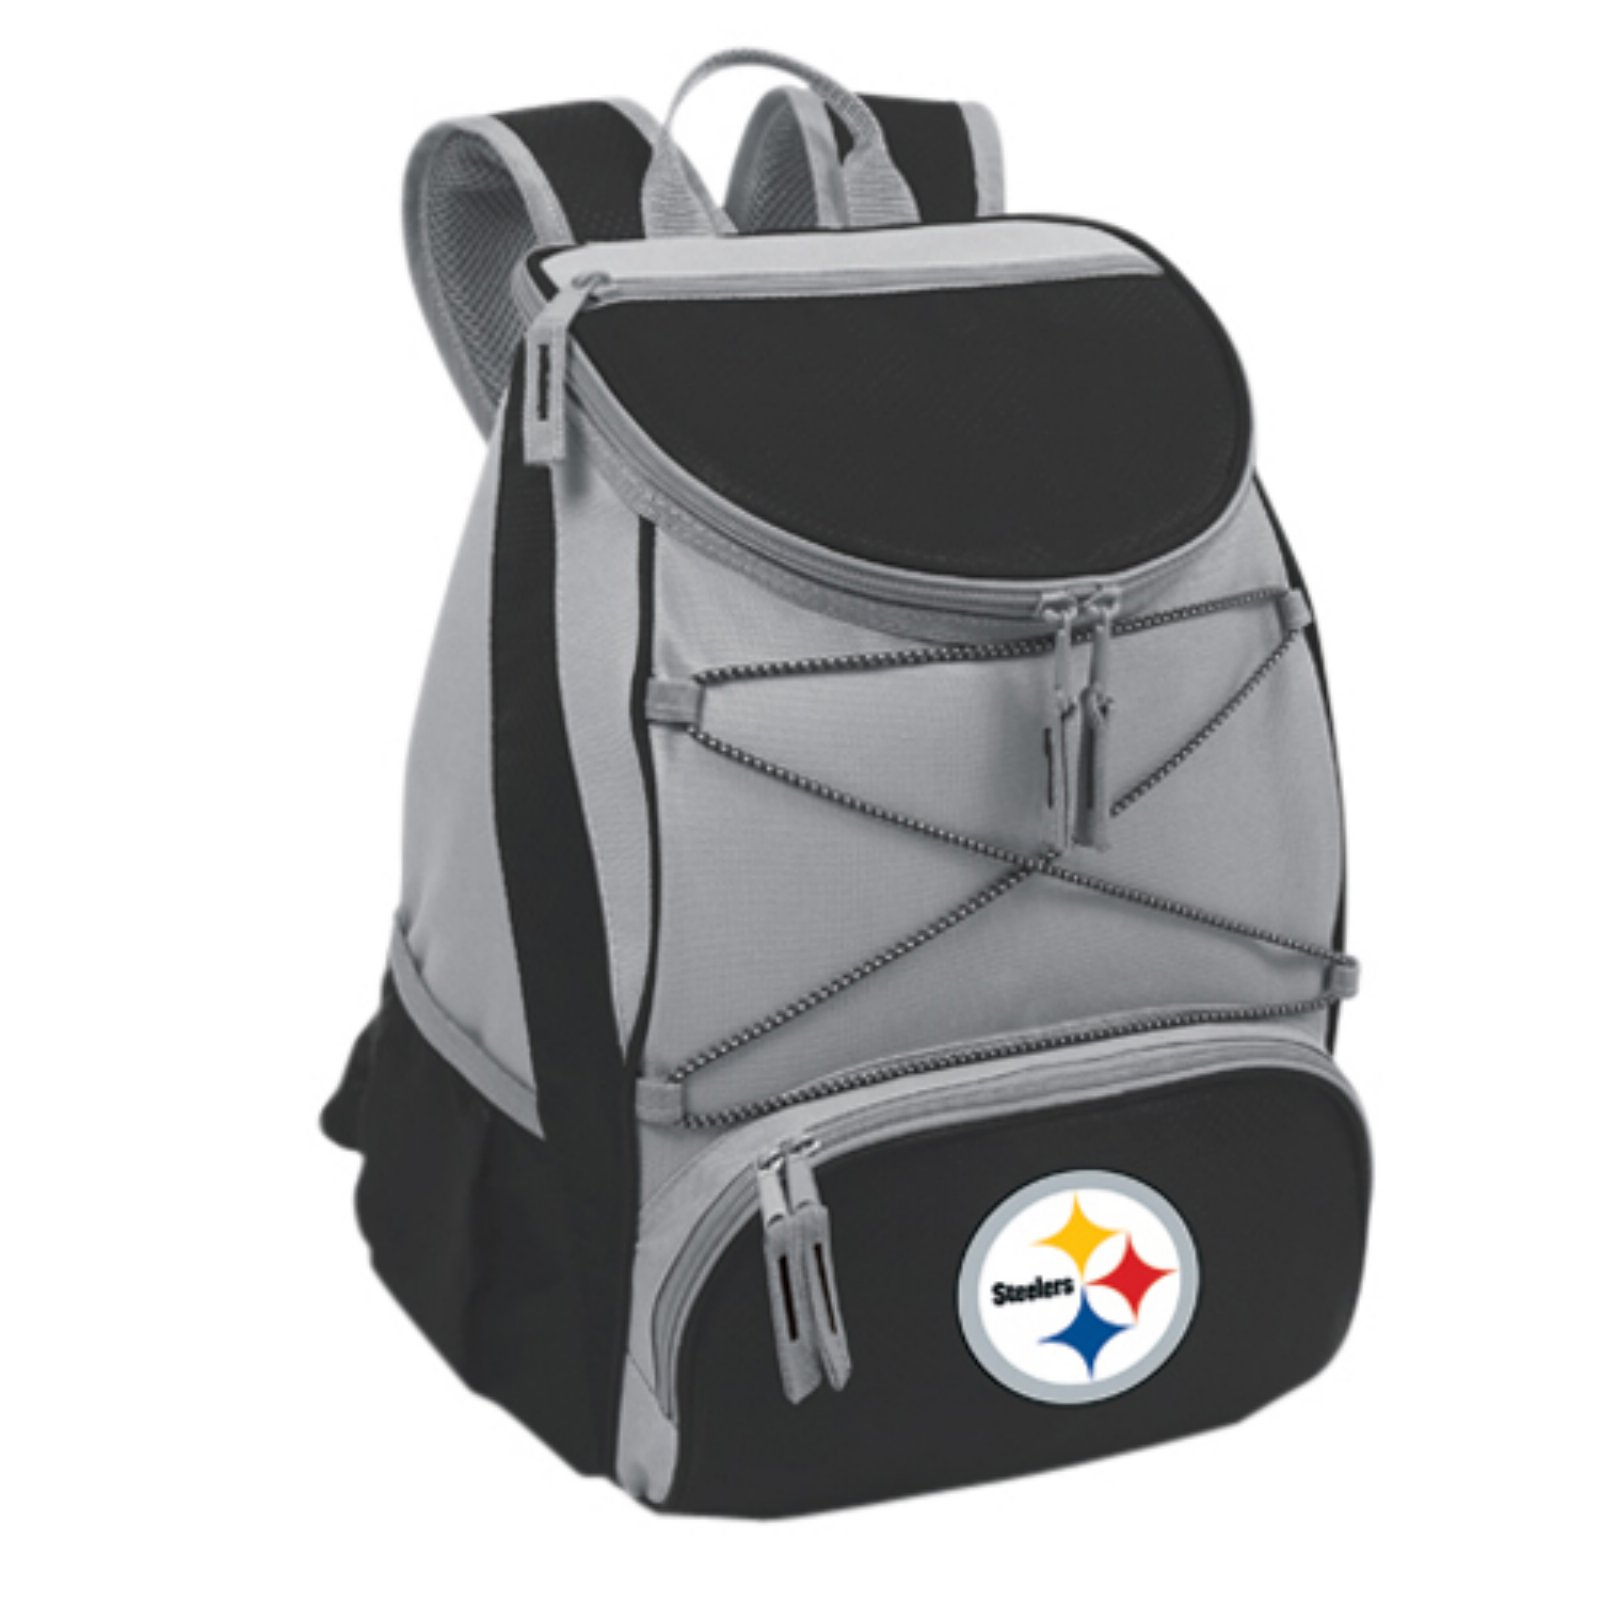 Picnic Time PTX Cooler, Black Pittsburgh Steelers Digital Print